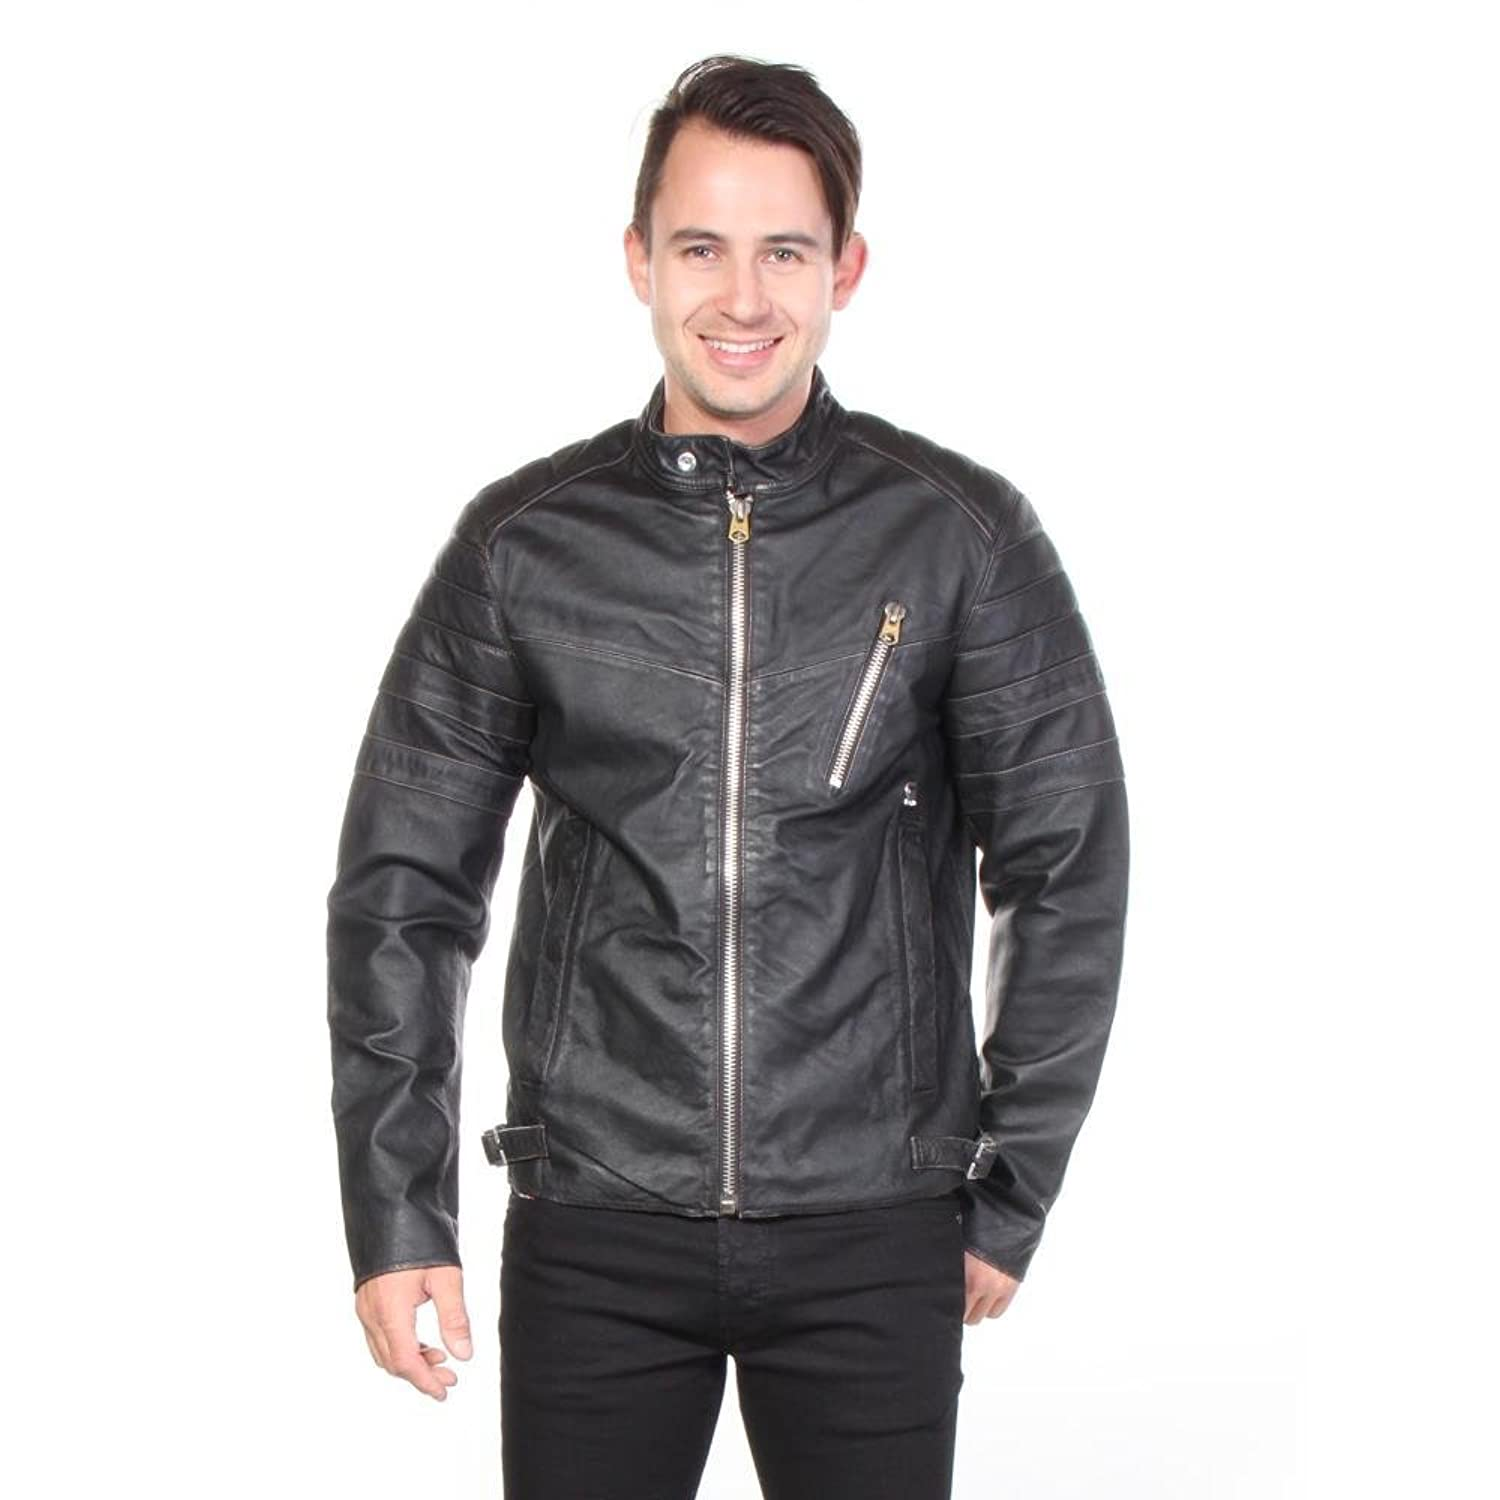 G-star Jacken Biker Leder Leather Herren online kaufen